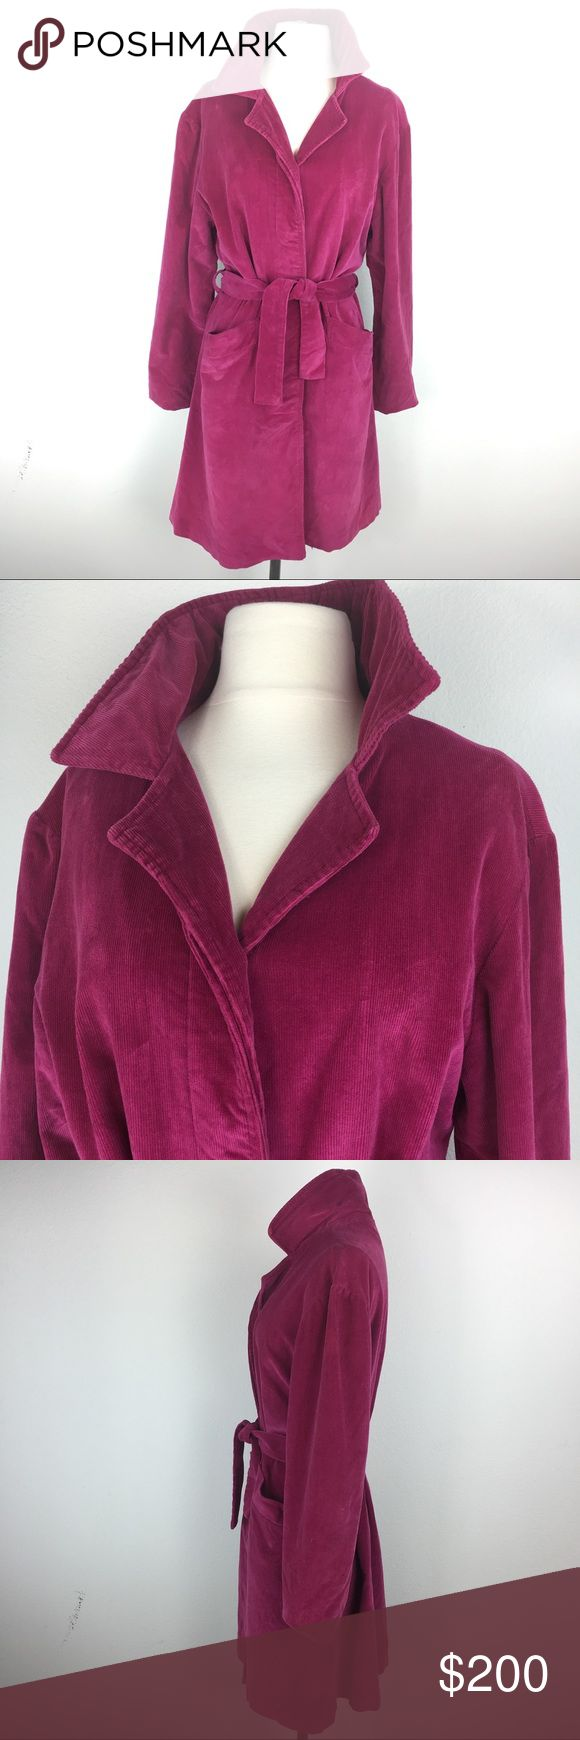 VINTAGE VERY RARE PIXIE YATES TRENCH COAT SZ M Fuchsia pink Corduroy Lined in pink this is the legend of Pixie Yates. google Her and see how rare this item really is. Early 90's. pixie yates Jackets & Coats